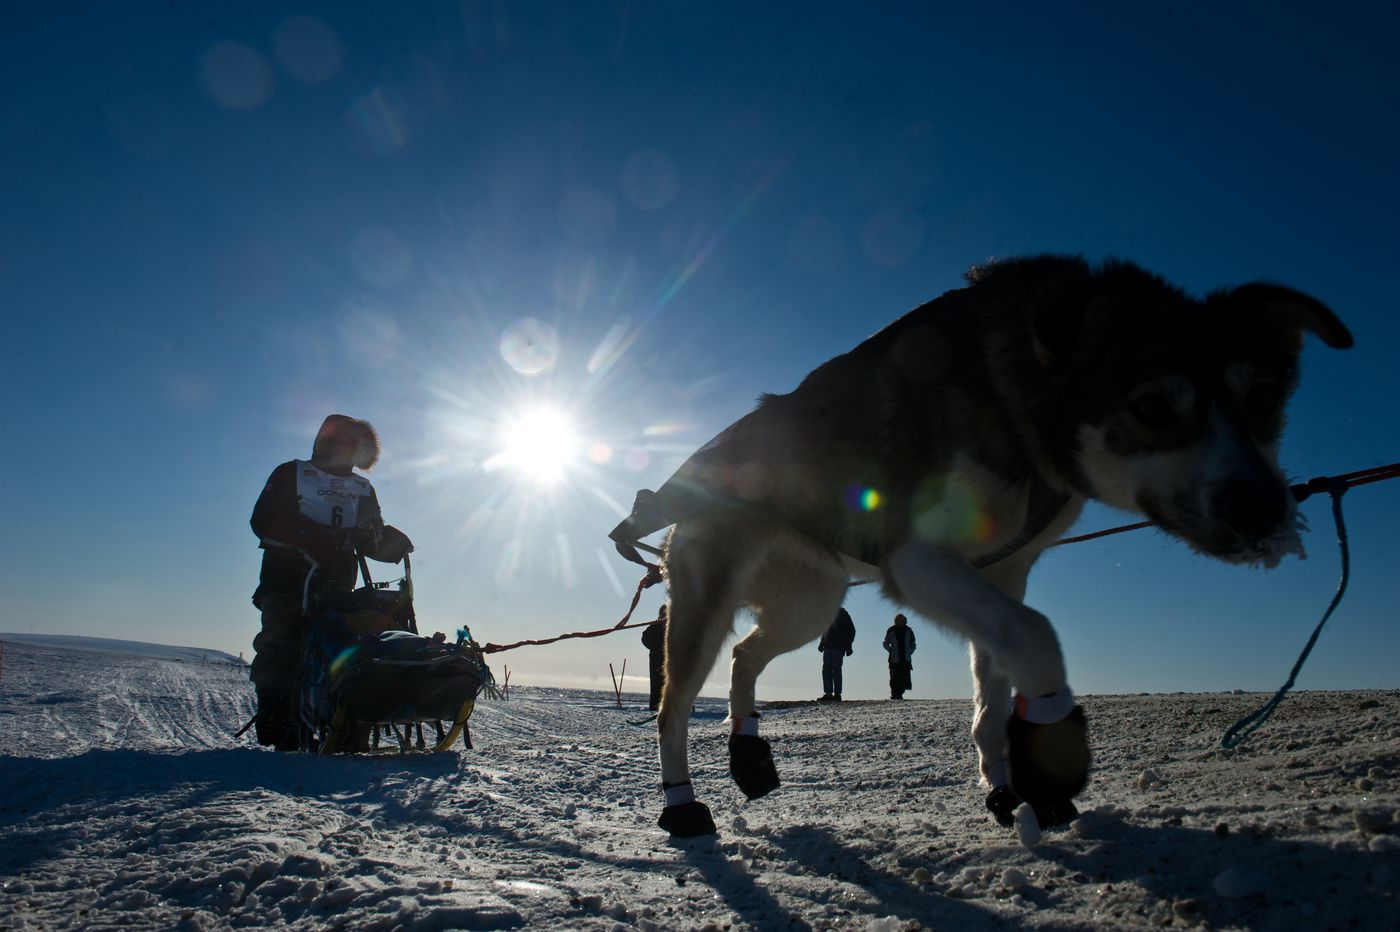 Ketil Reitan approaches Nome. Mushers continued to trickle in to Nome, the finish of the Iditarod Trail Sled Dog Race, on Wednesday, March 16, 2016.